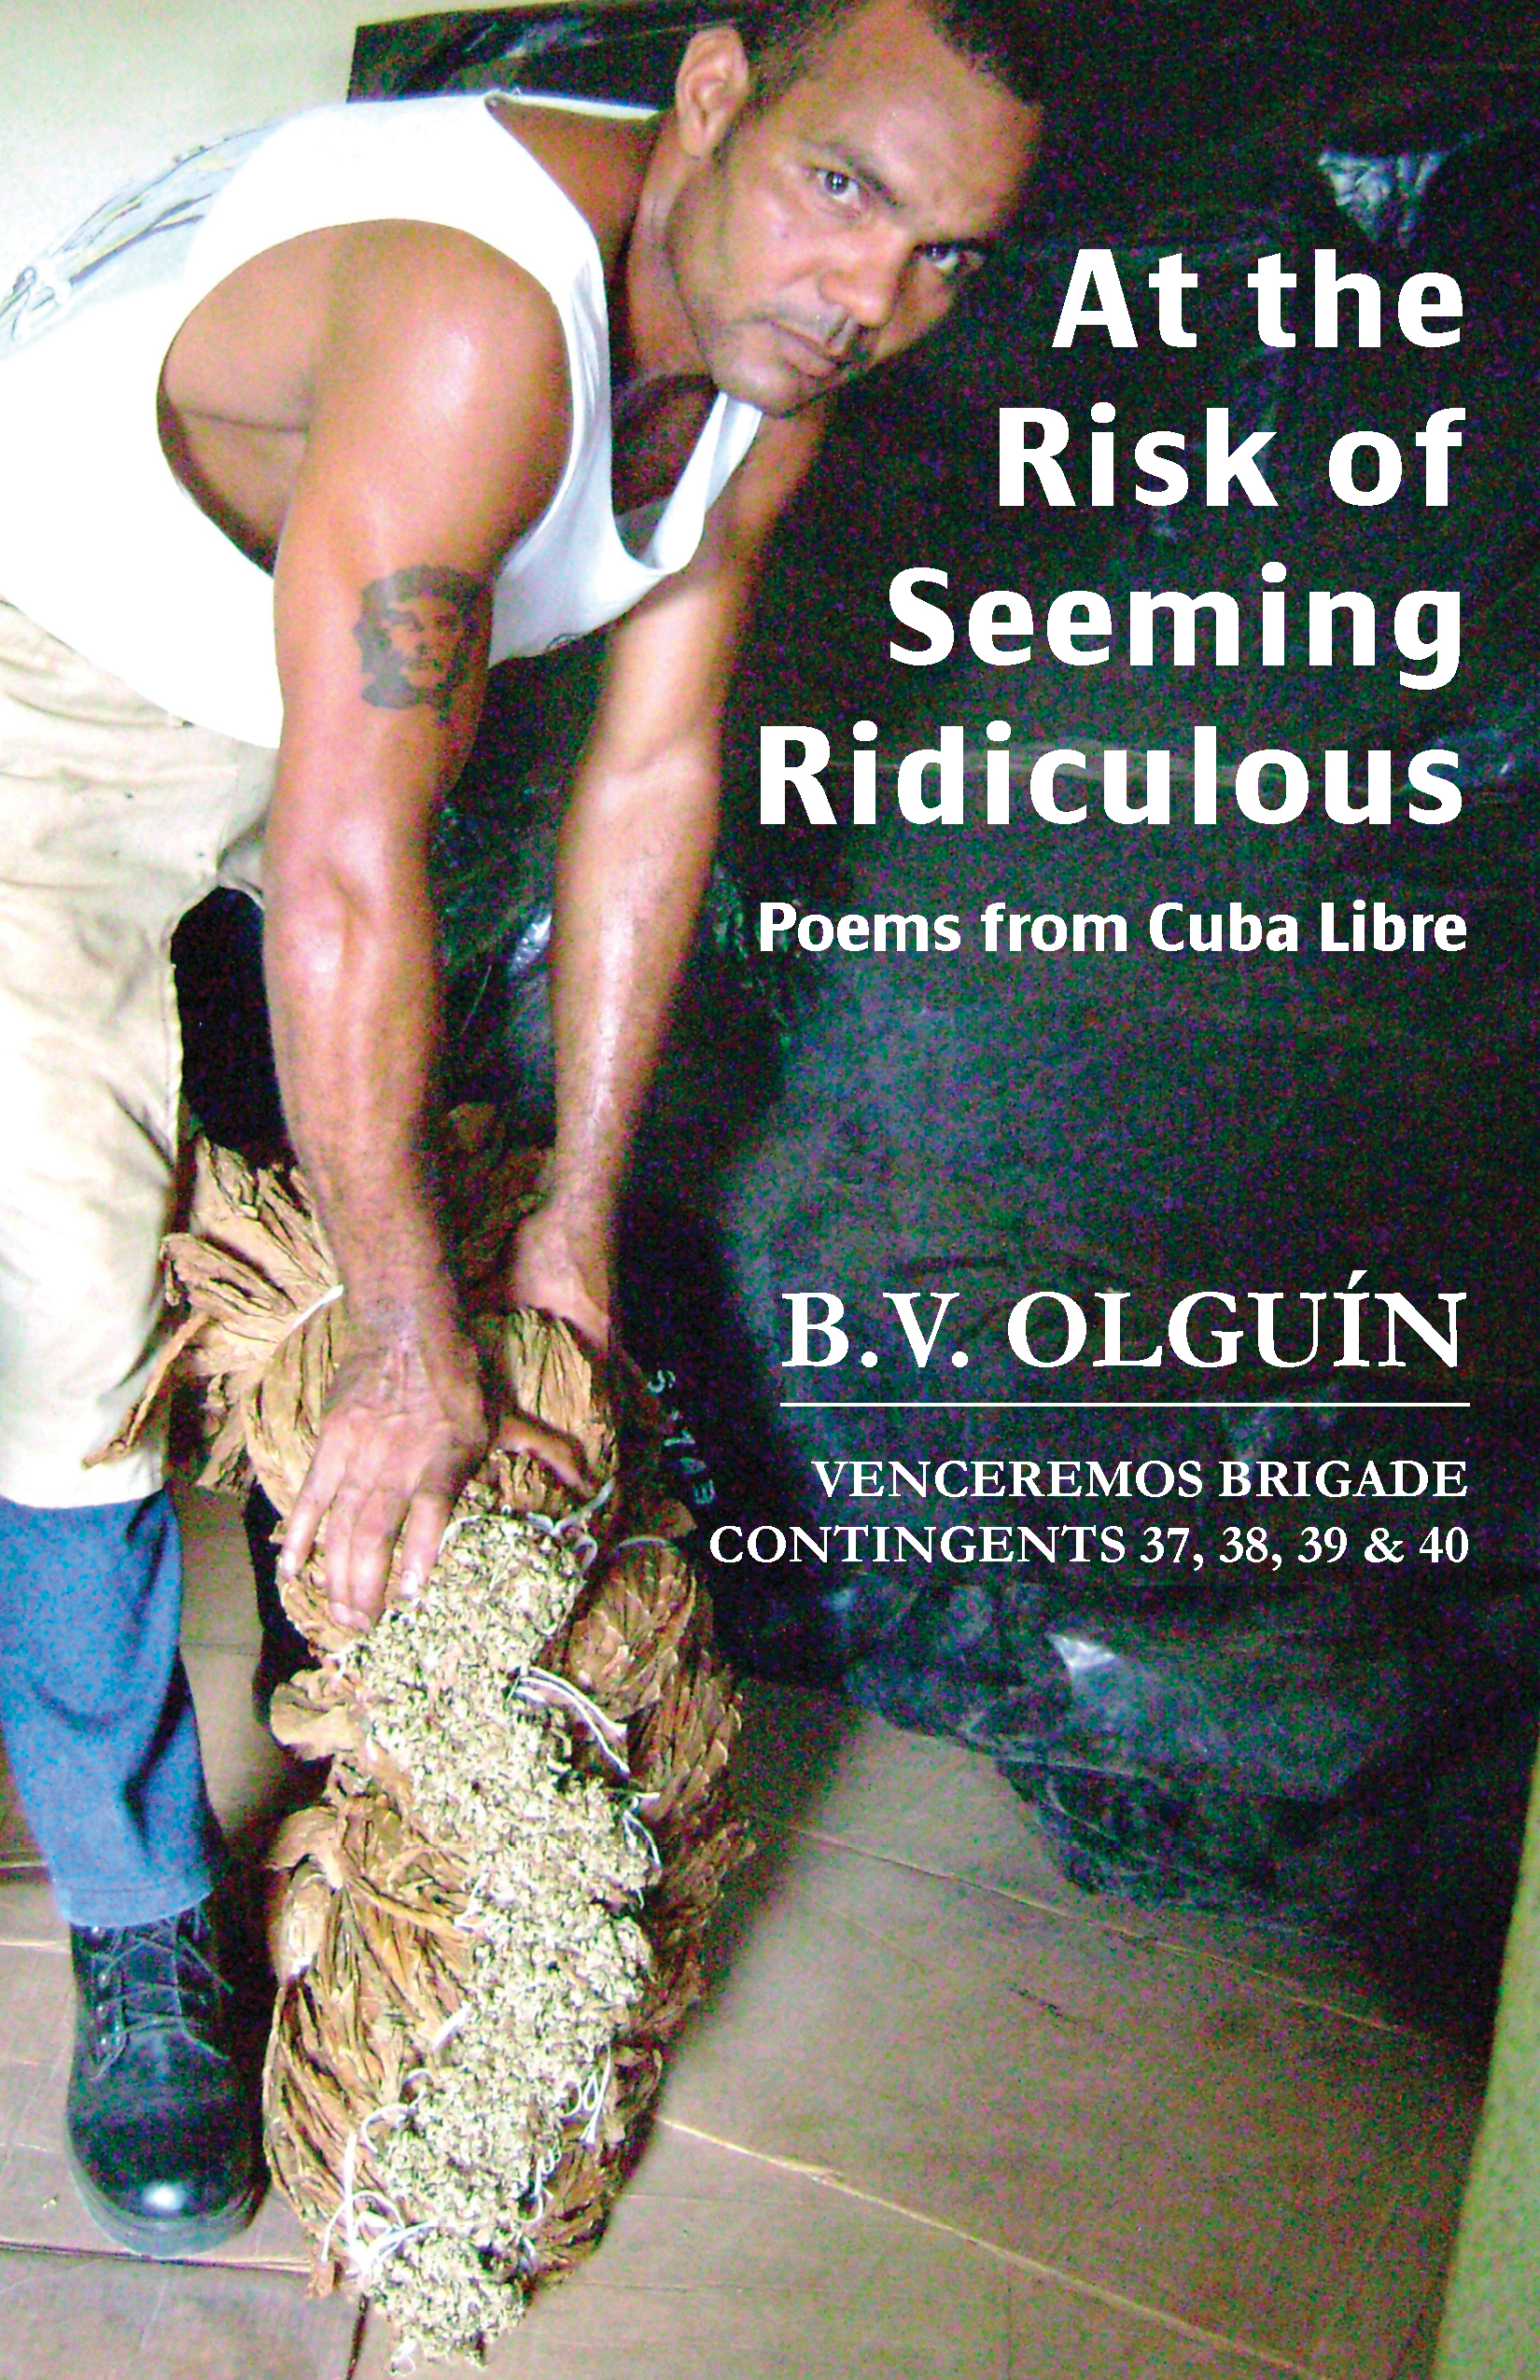 At the Risk of Seeming Ridiculous: Poems from Cuba Libre by Ben Olguín